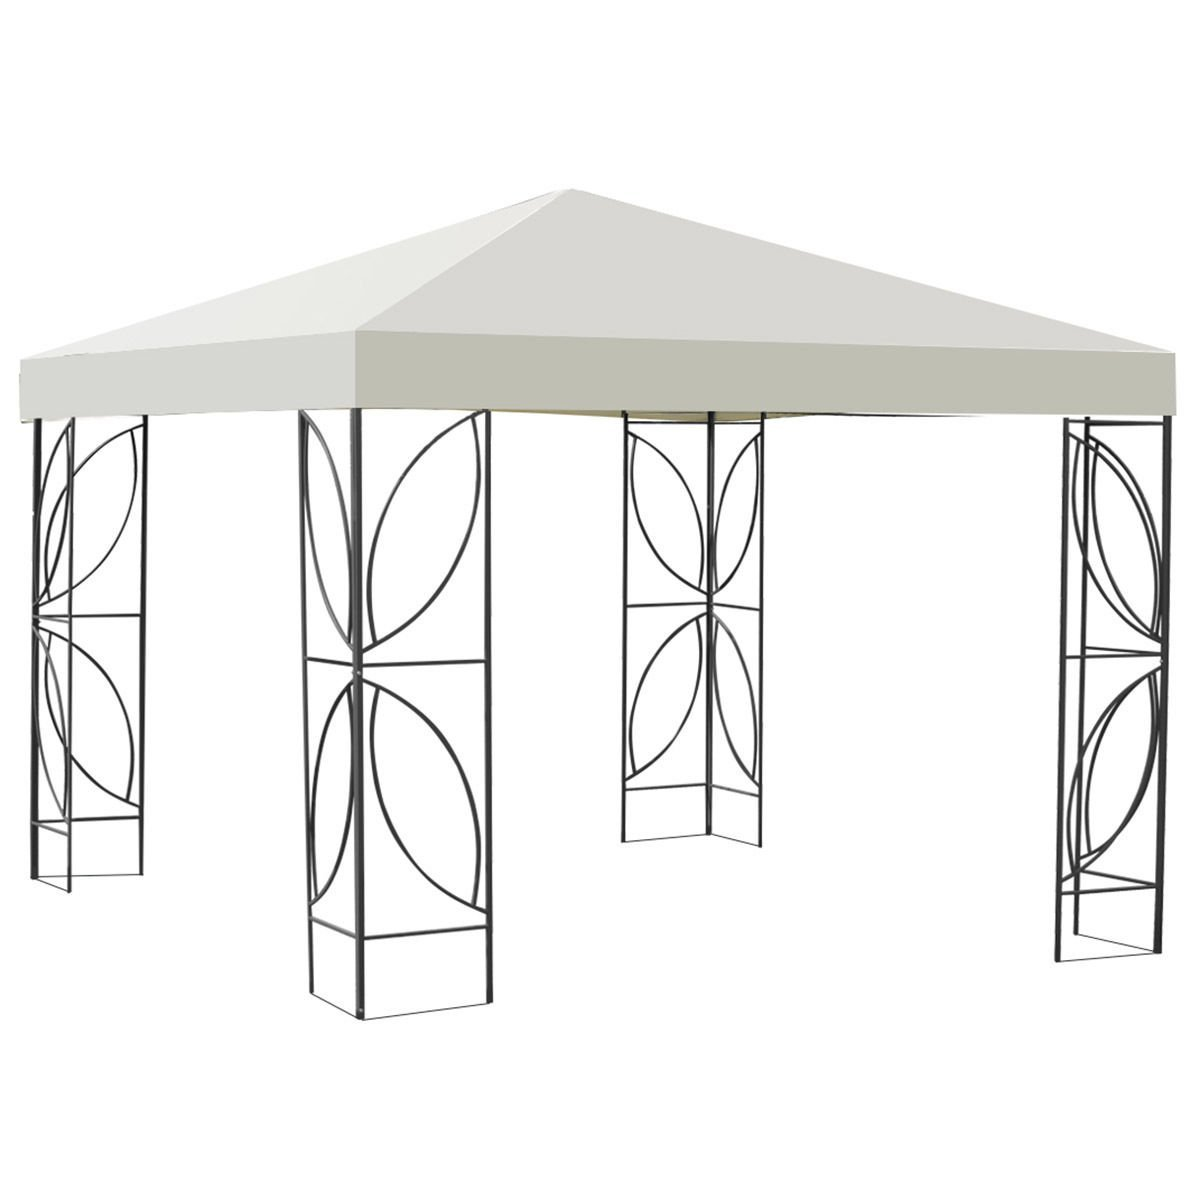 Cheap Cheap 10x10 Canopy Tent, find Cheap 10x10 Canopy Tent deals on ...